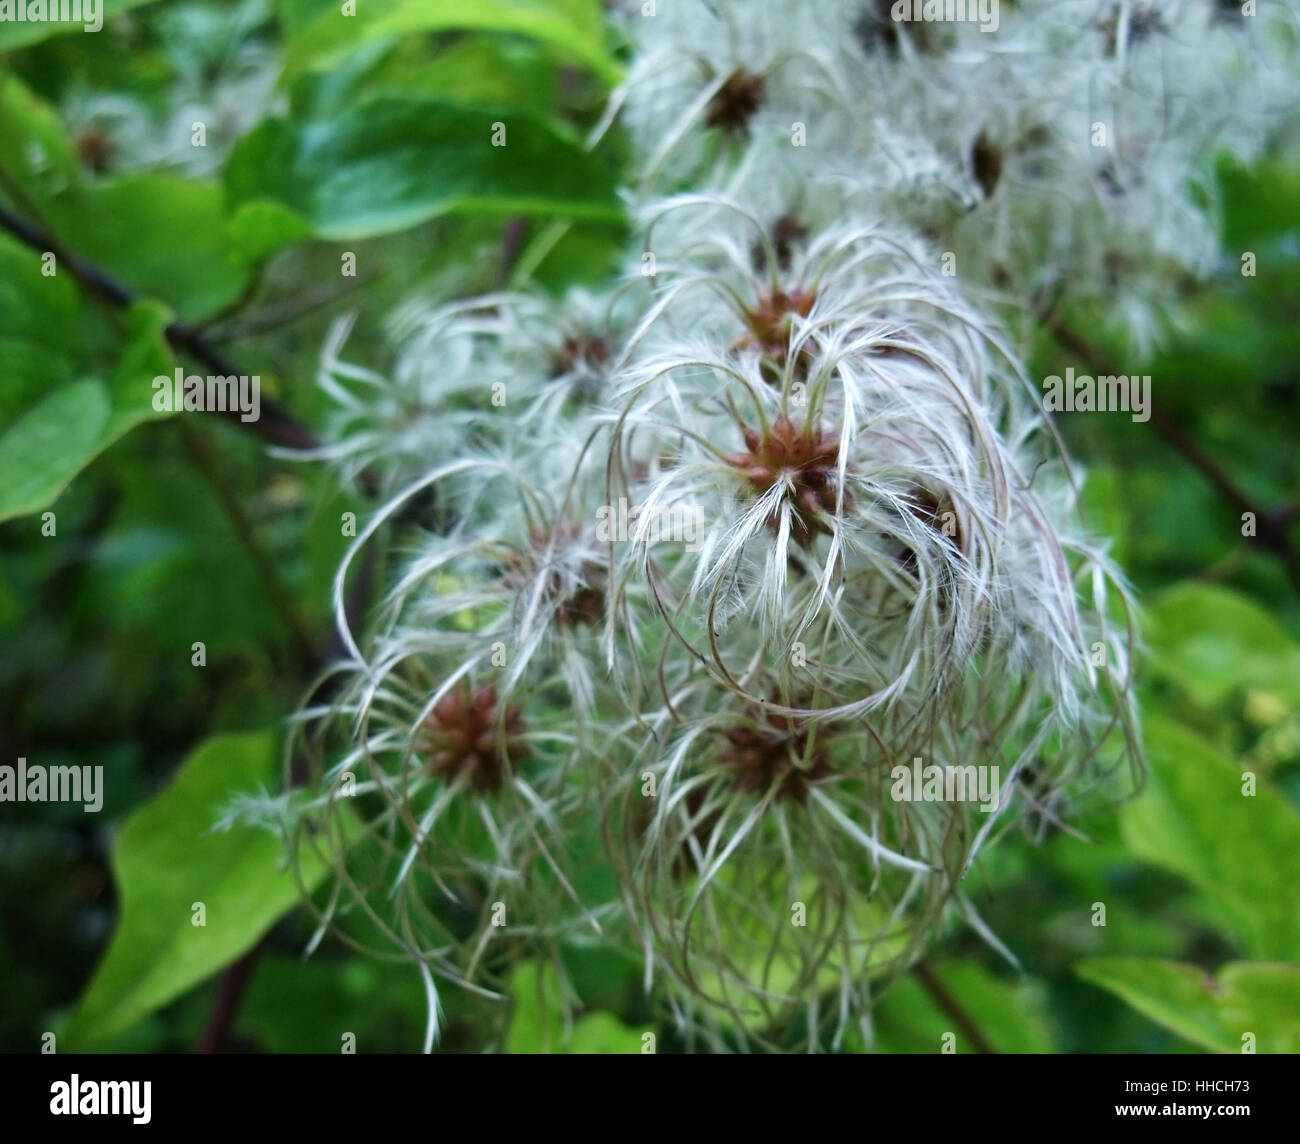 outdoor shot of some fluffy seeds at summer time in front of green leaves - Stock Image